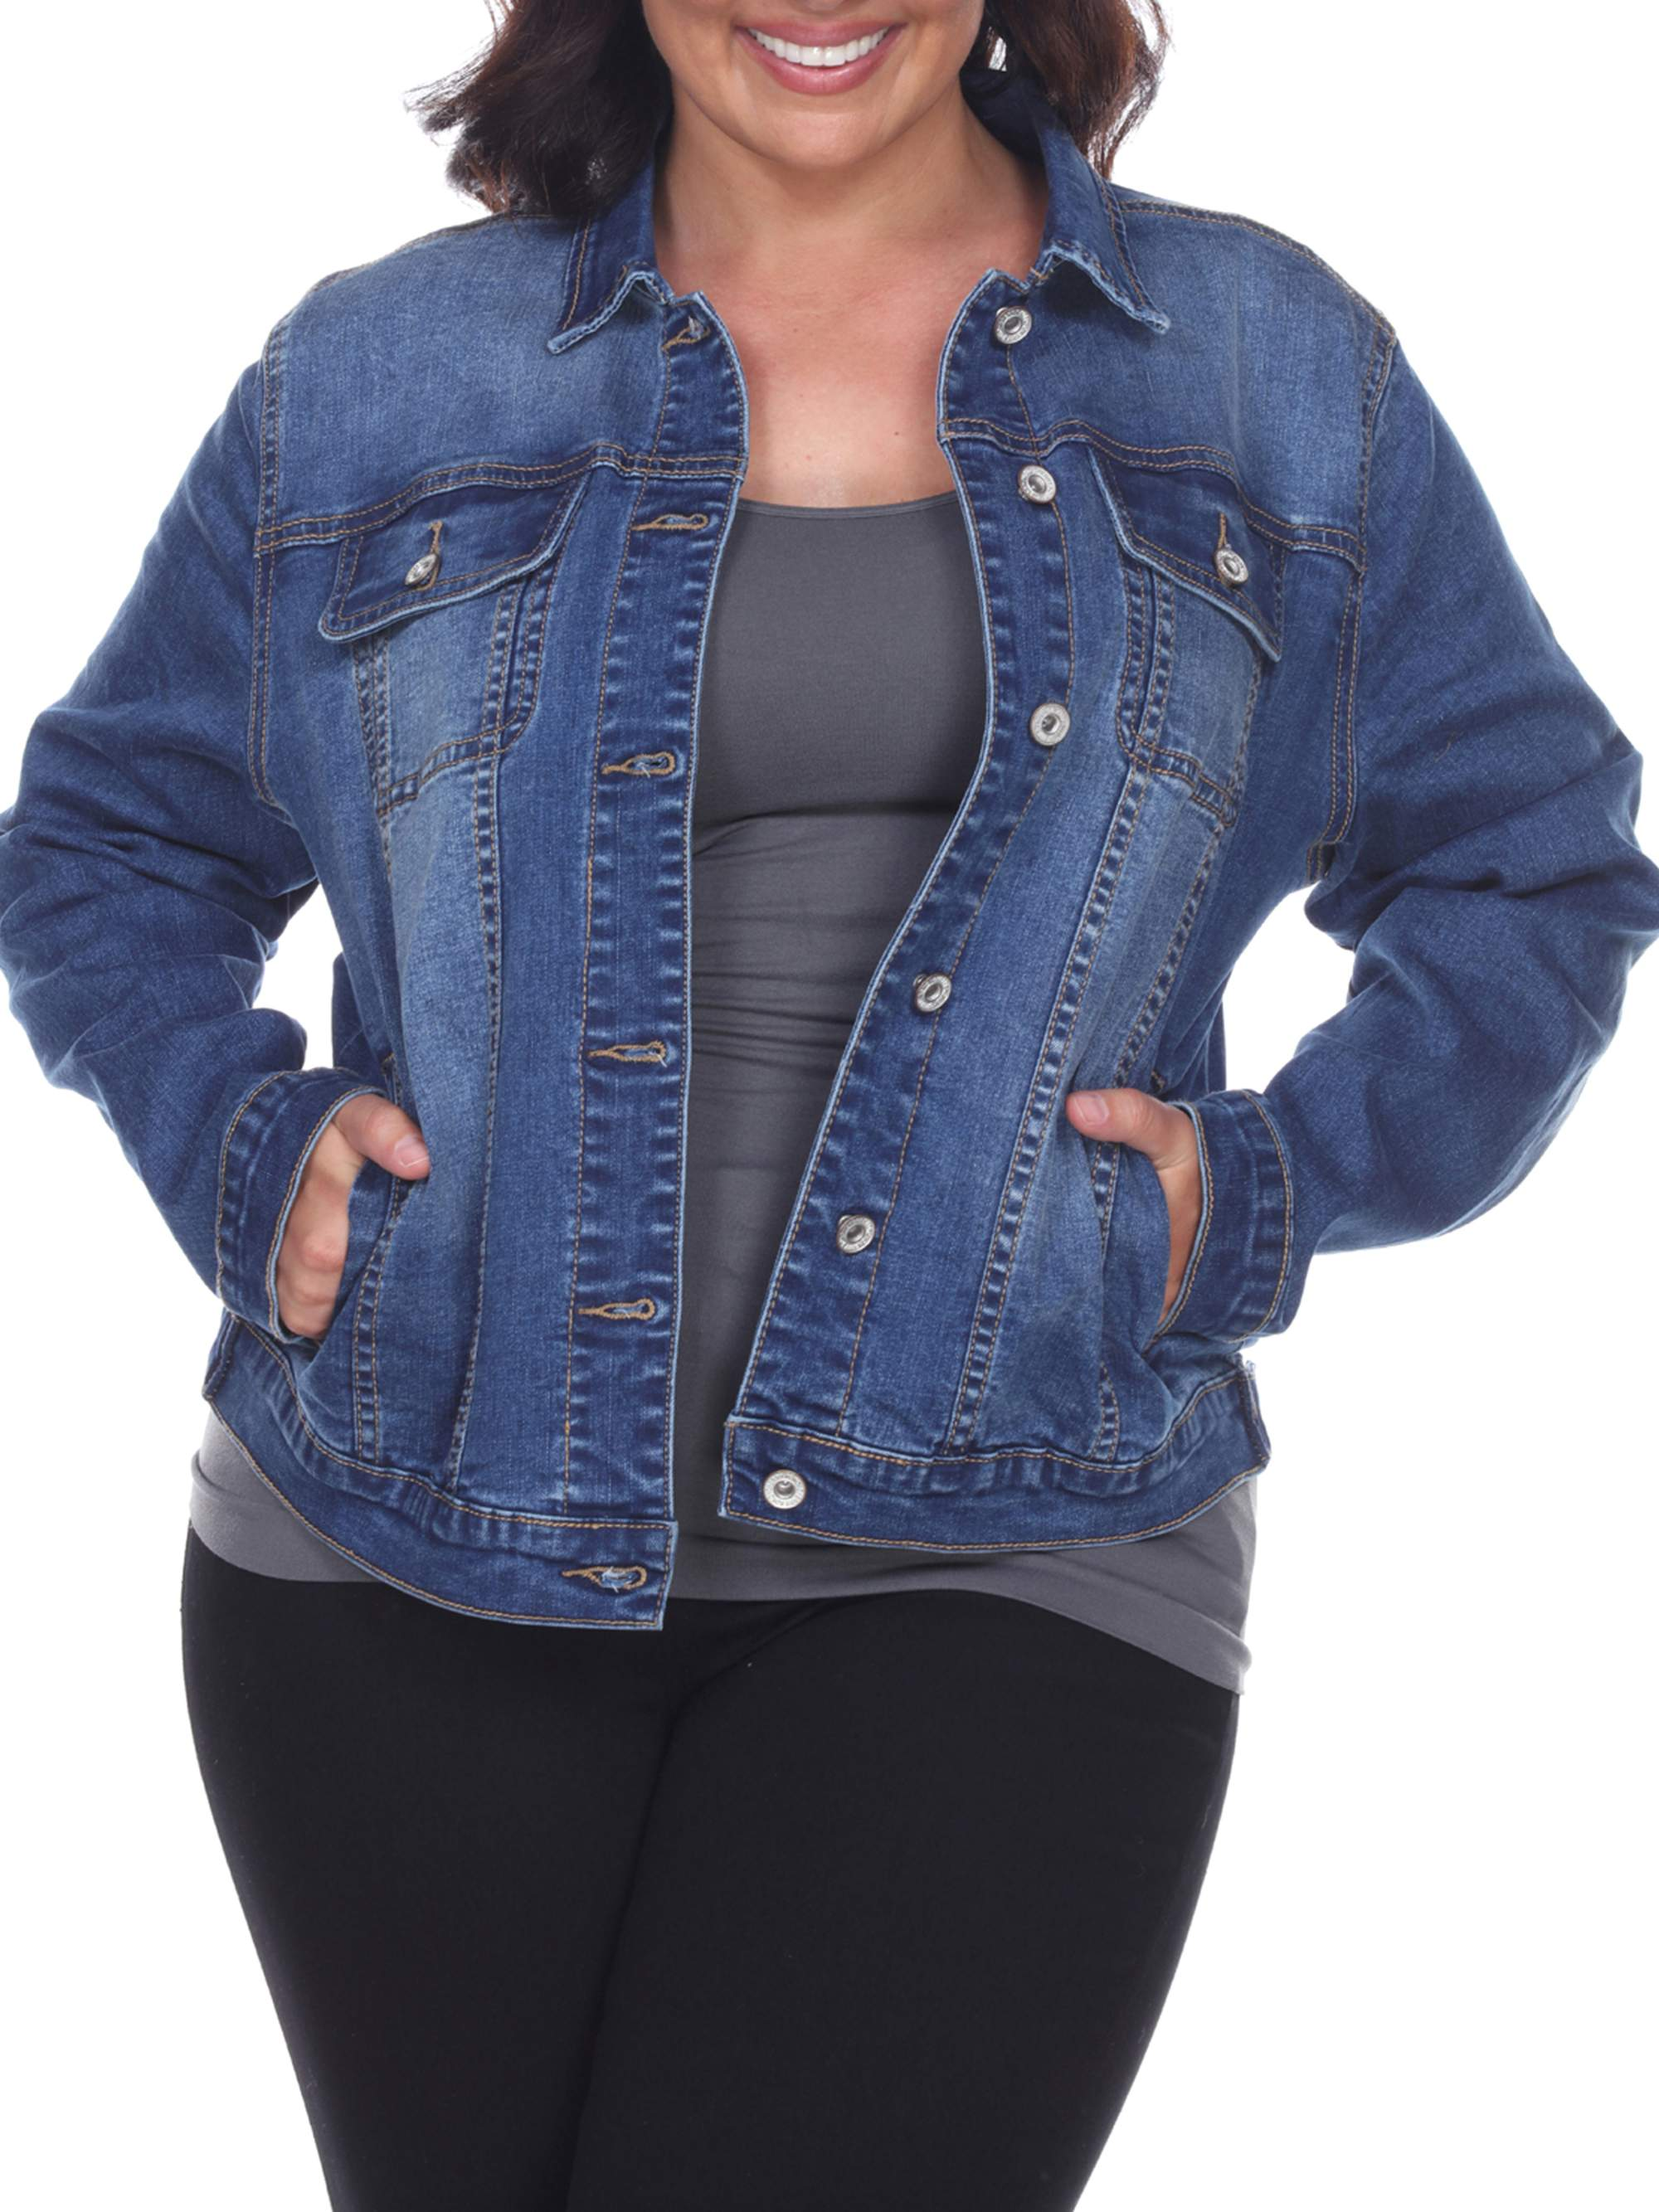 1be7fdf77bd Women's Plus Size Denim Jacket - Walmart.com